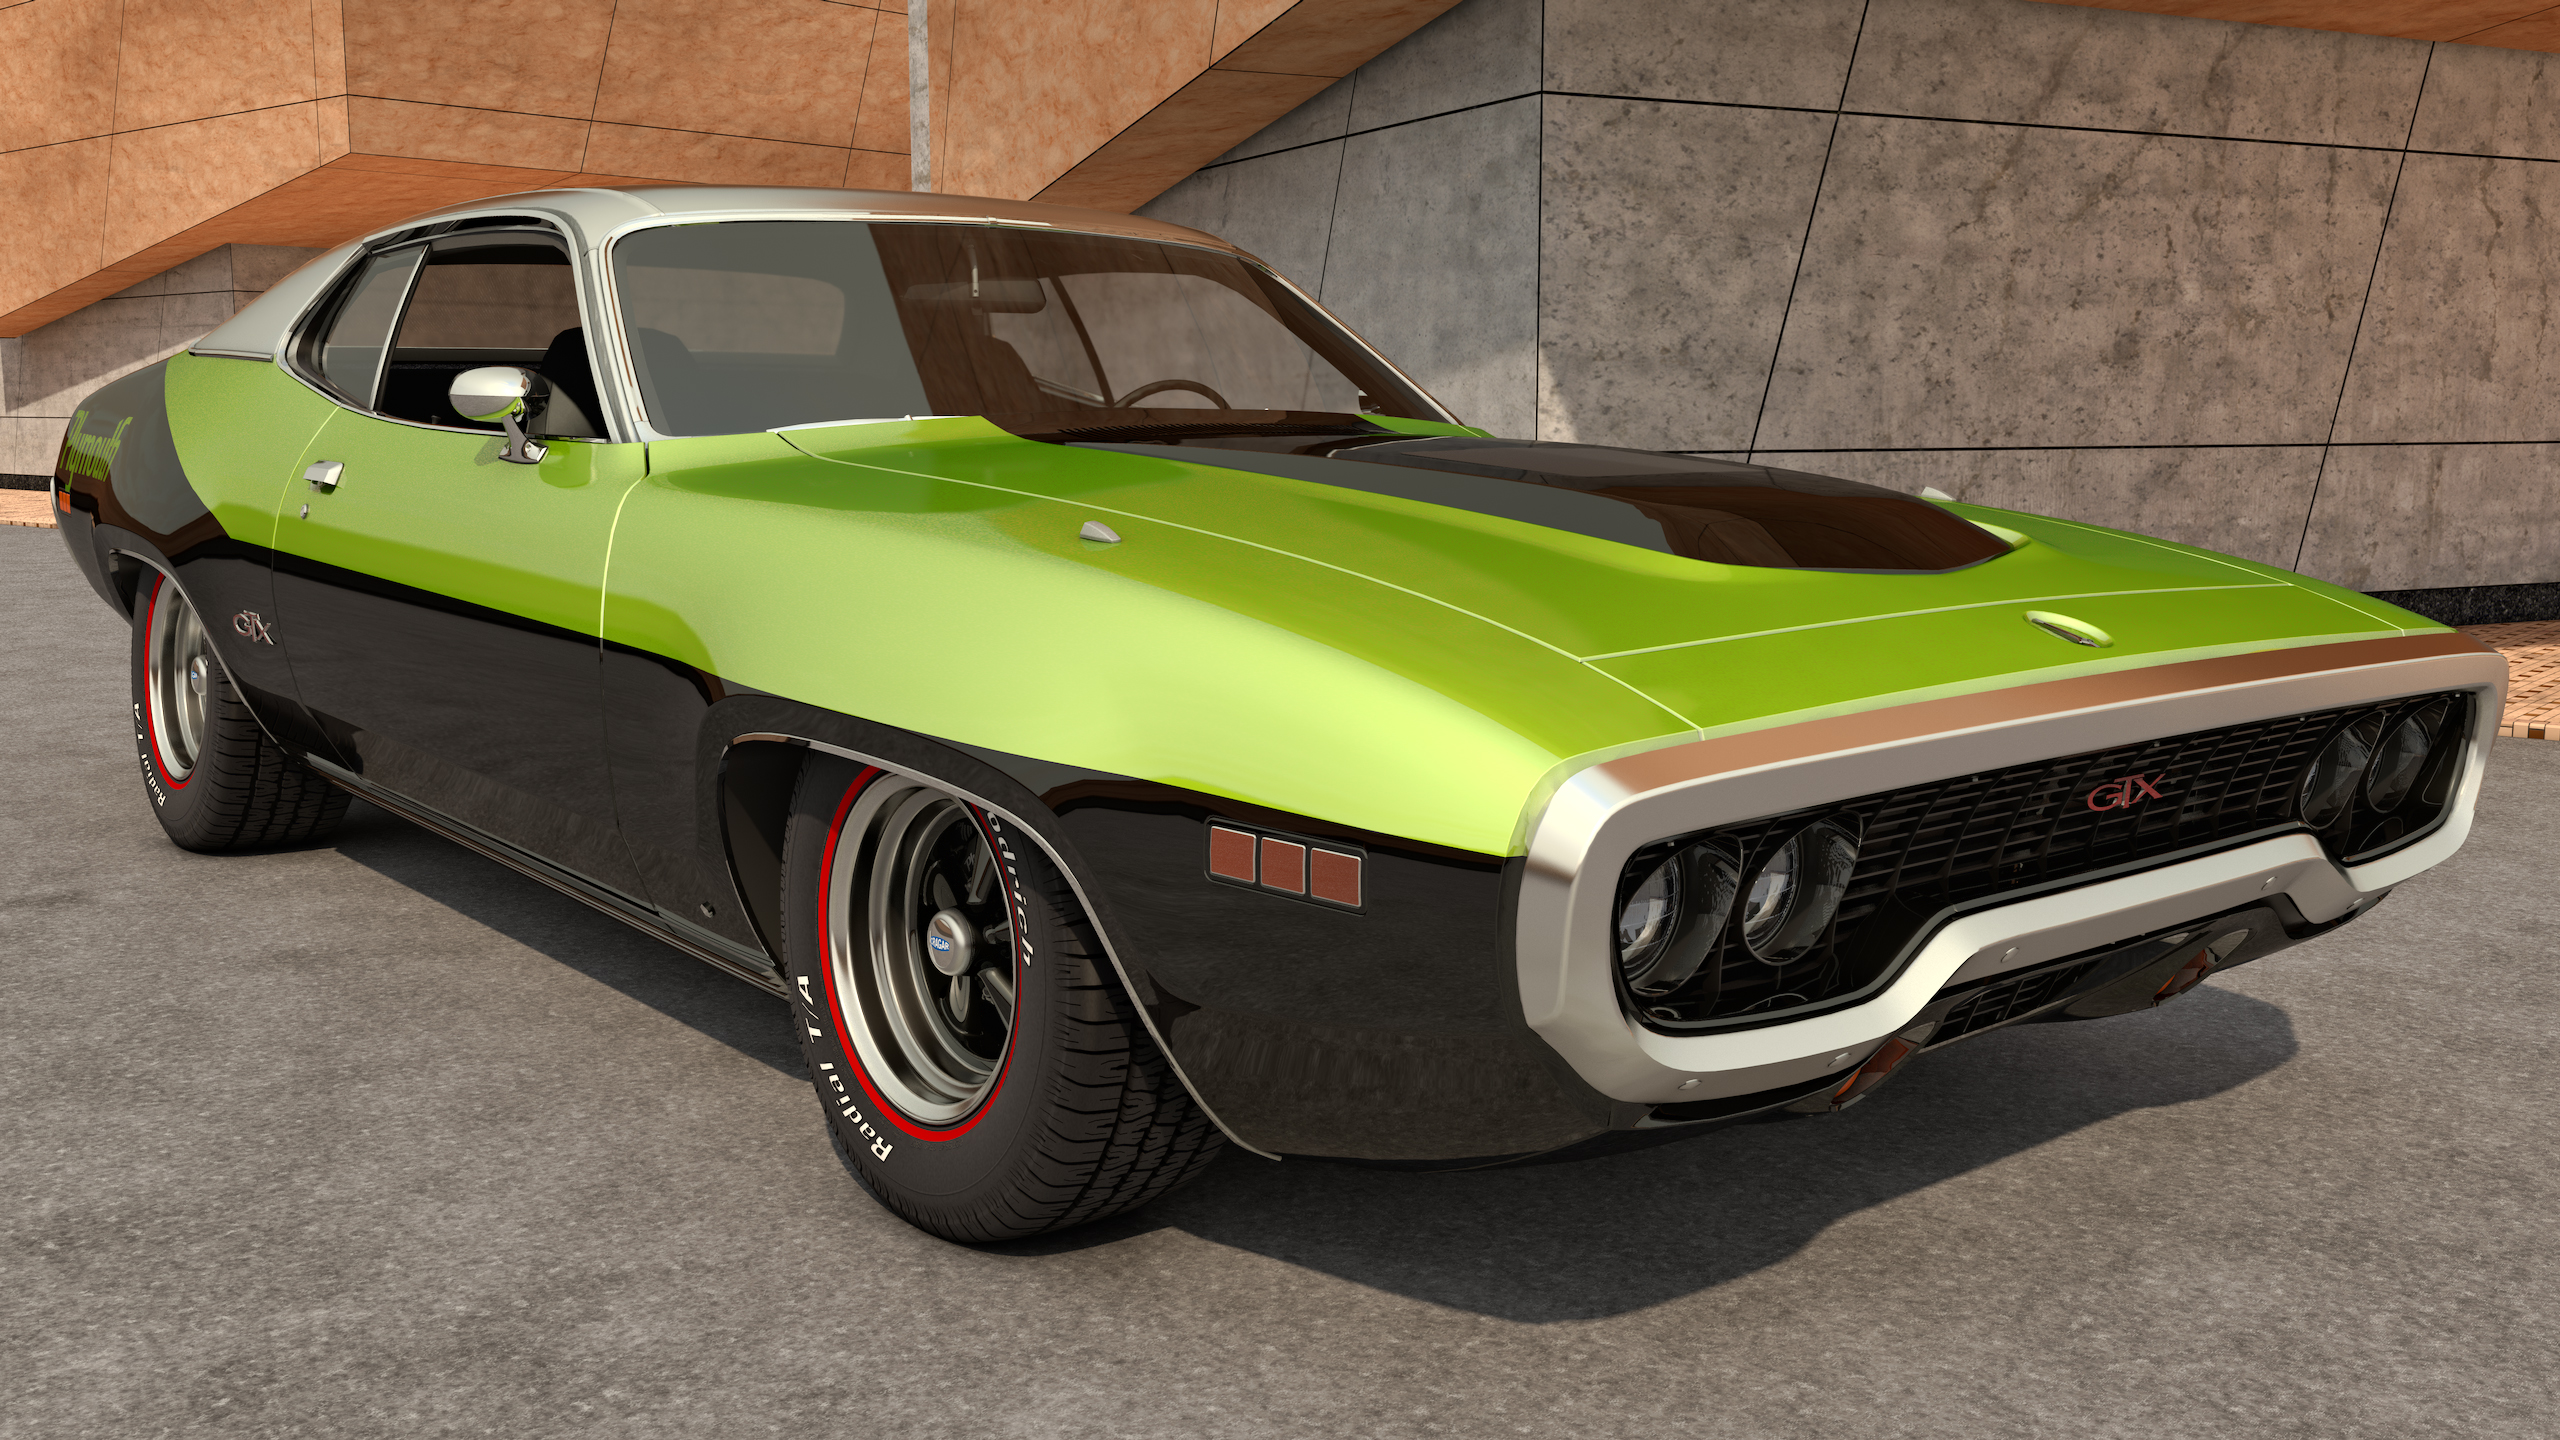 1971 Plymouth Gtx By Samcurry On Deviantart